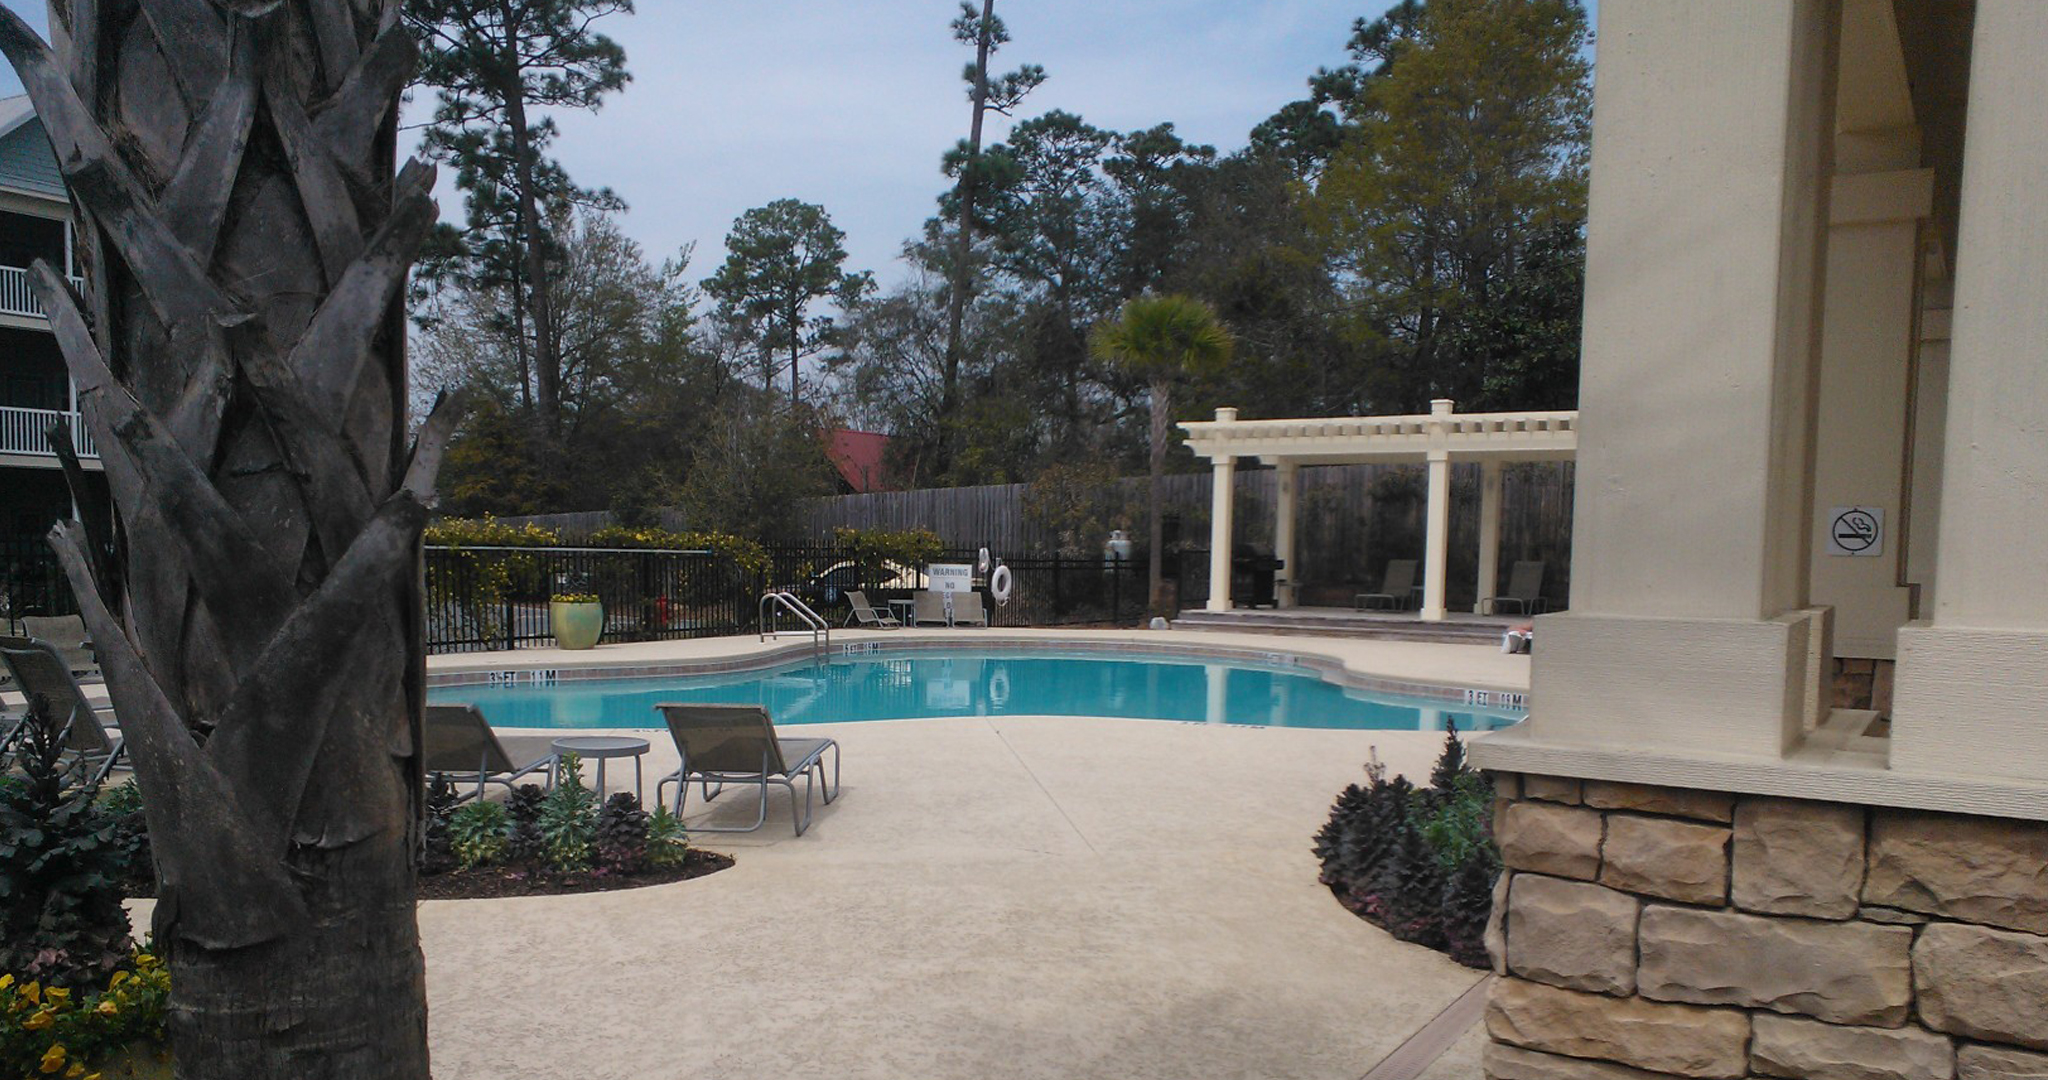 Enjoy the pool and other amenities at our corporate housing rental opportunities in Pensacola.